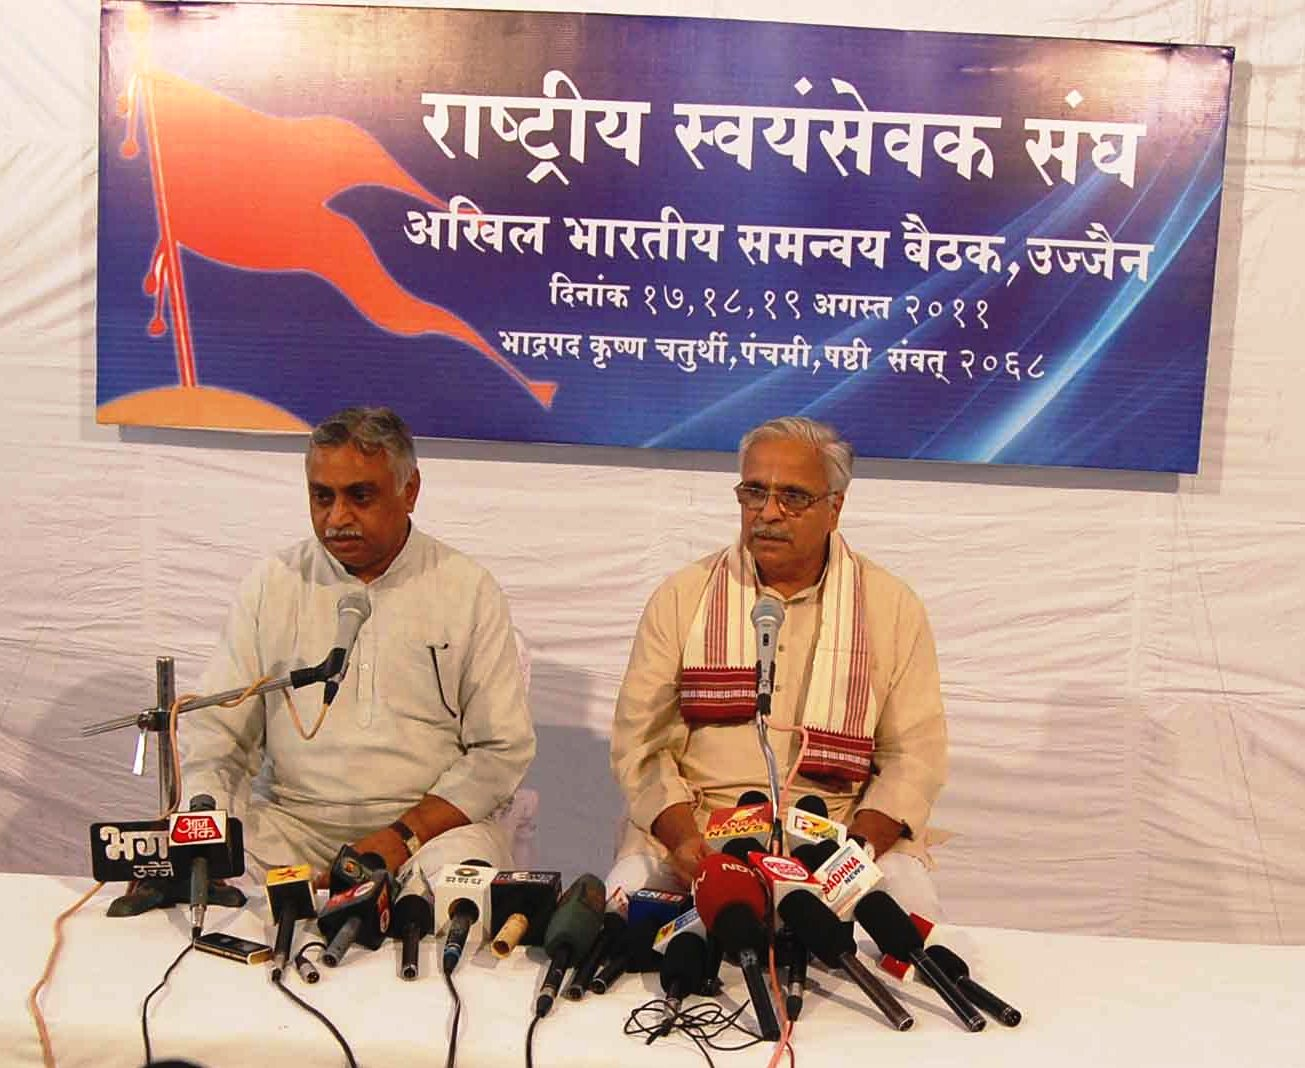 Press briefing by RSS General secretary Bhaiyyaji Joshi at Ujjain Today